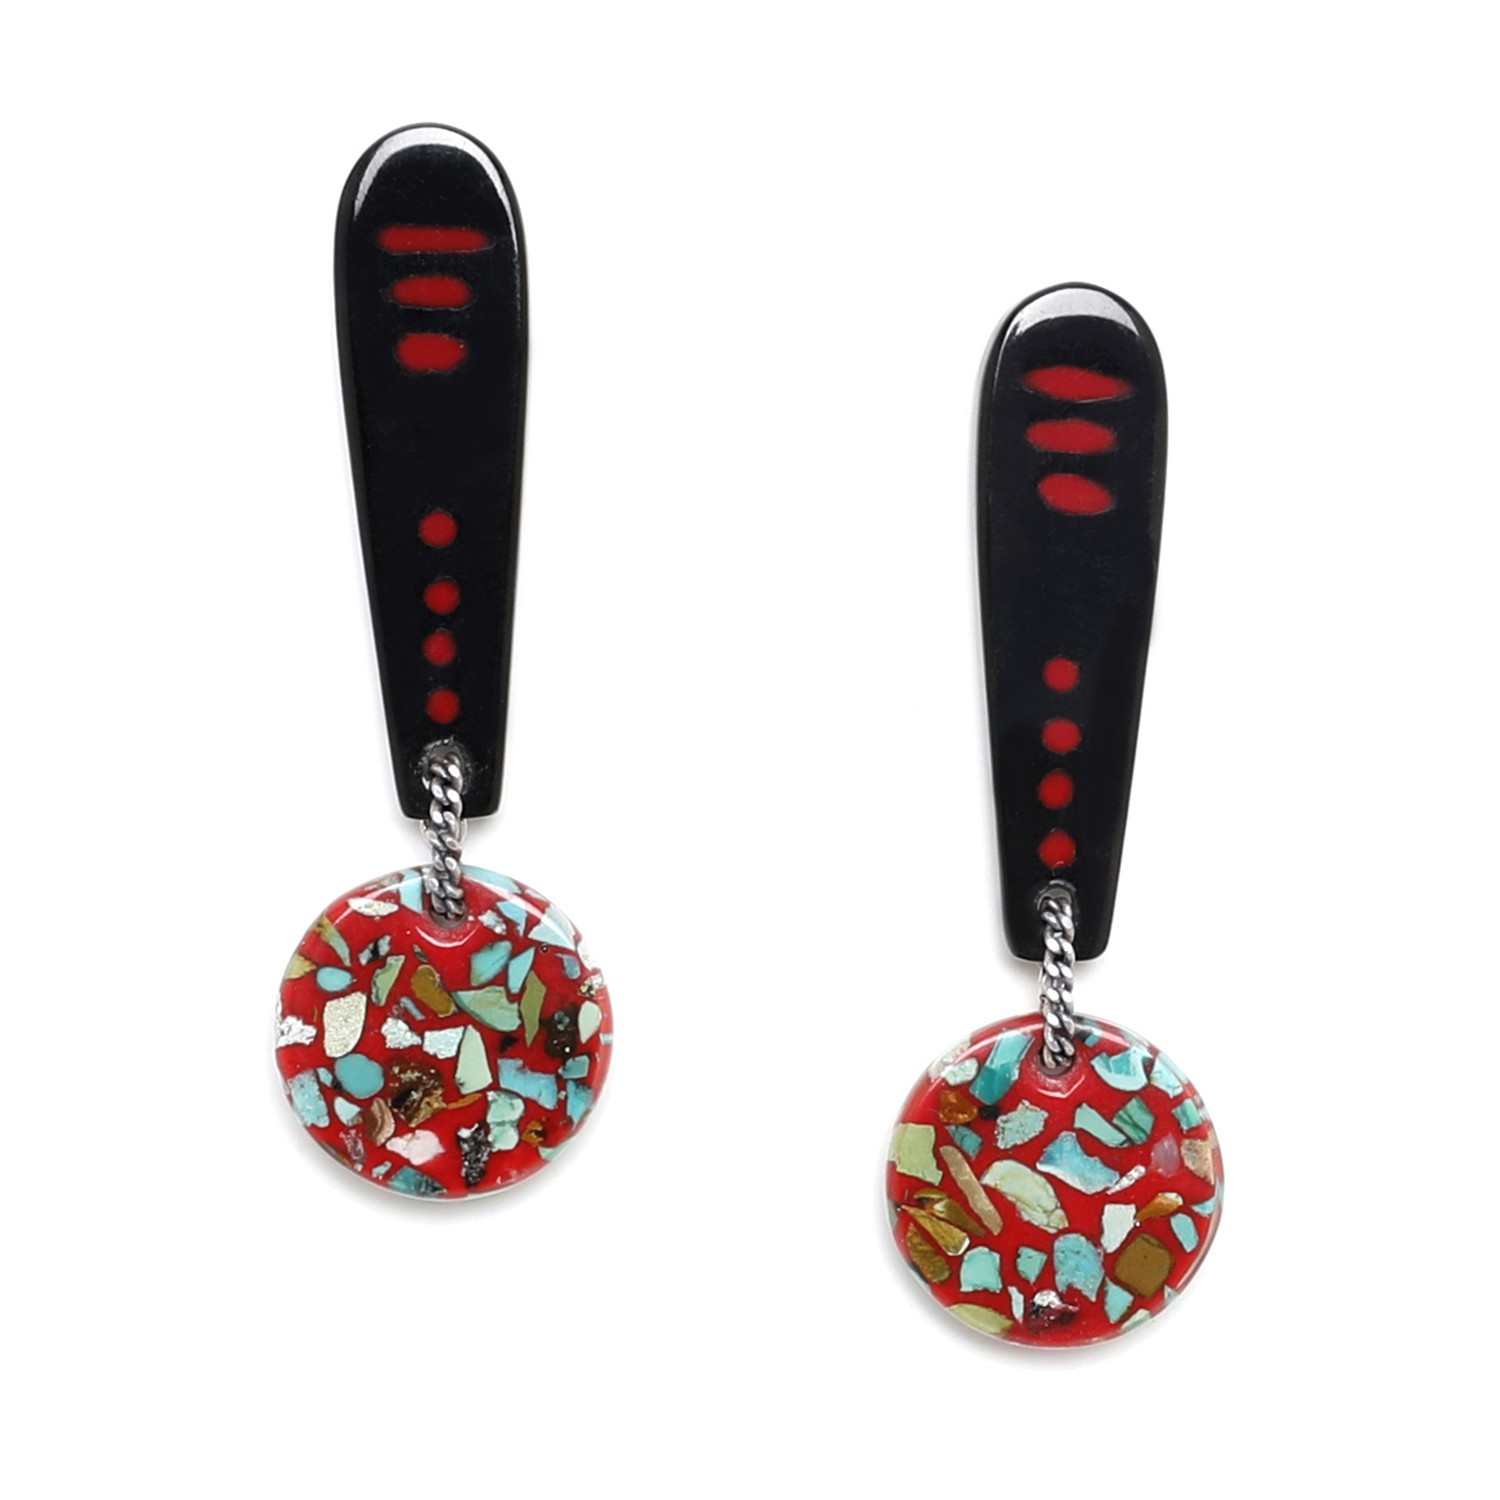 SAGARMATHA disc on stick earrings